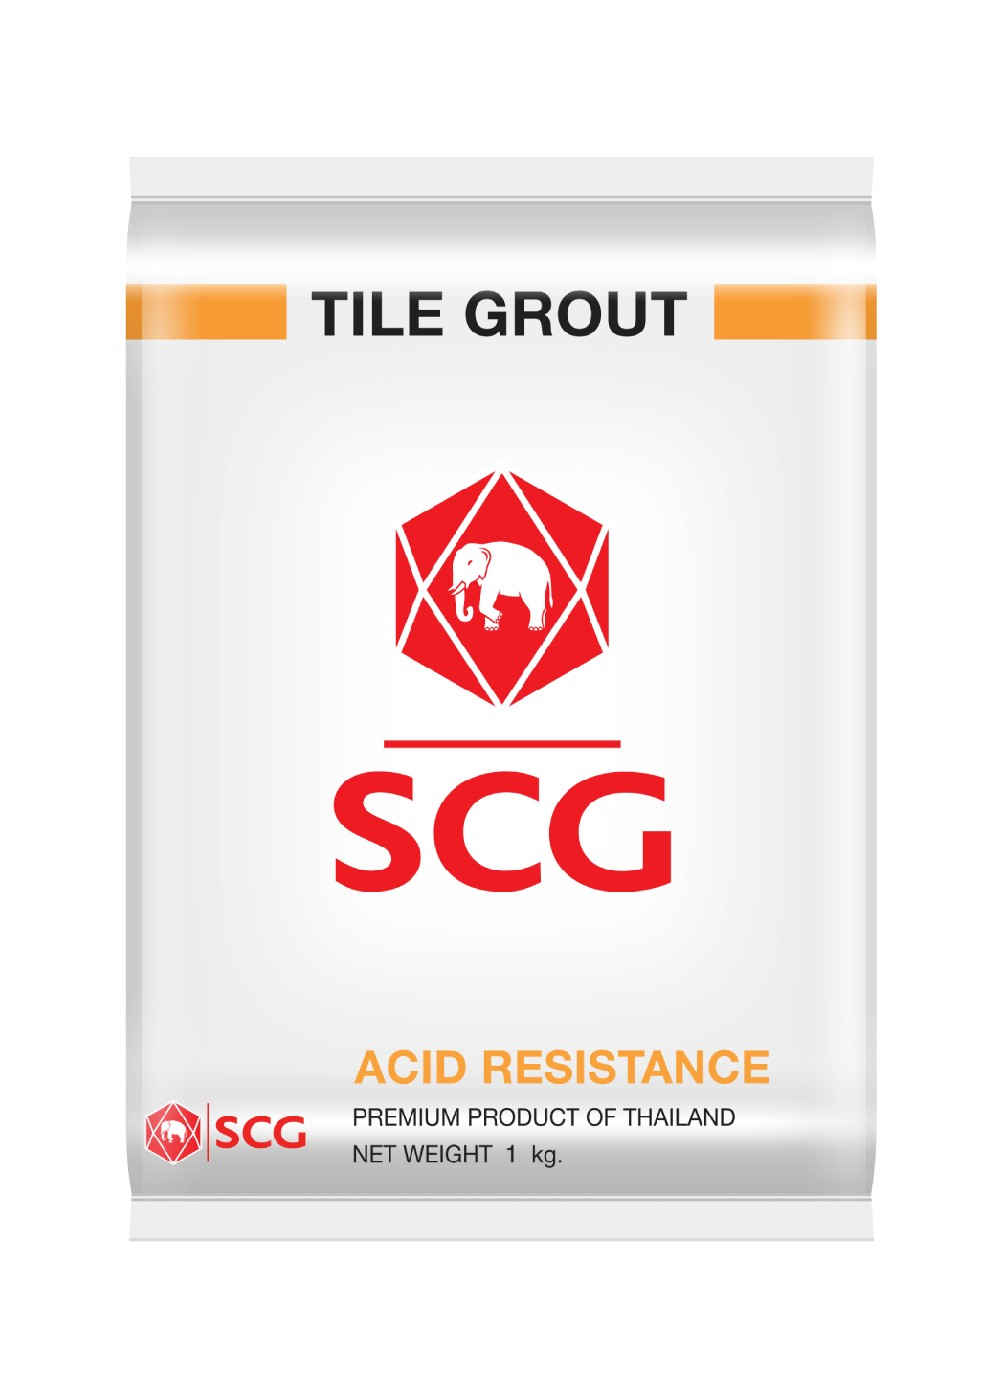 SCG Tile grout acid resistance SCG Tile Grout Manufacturer